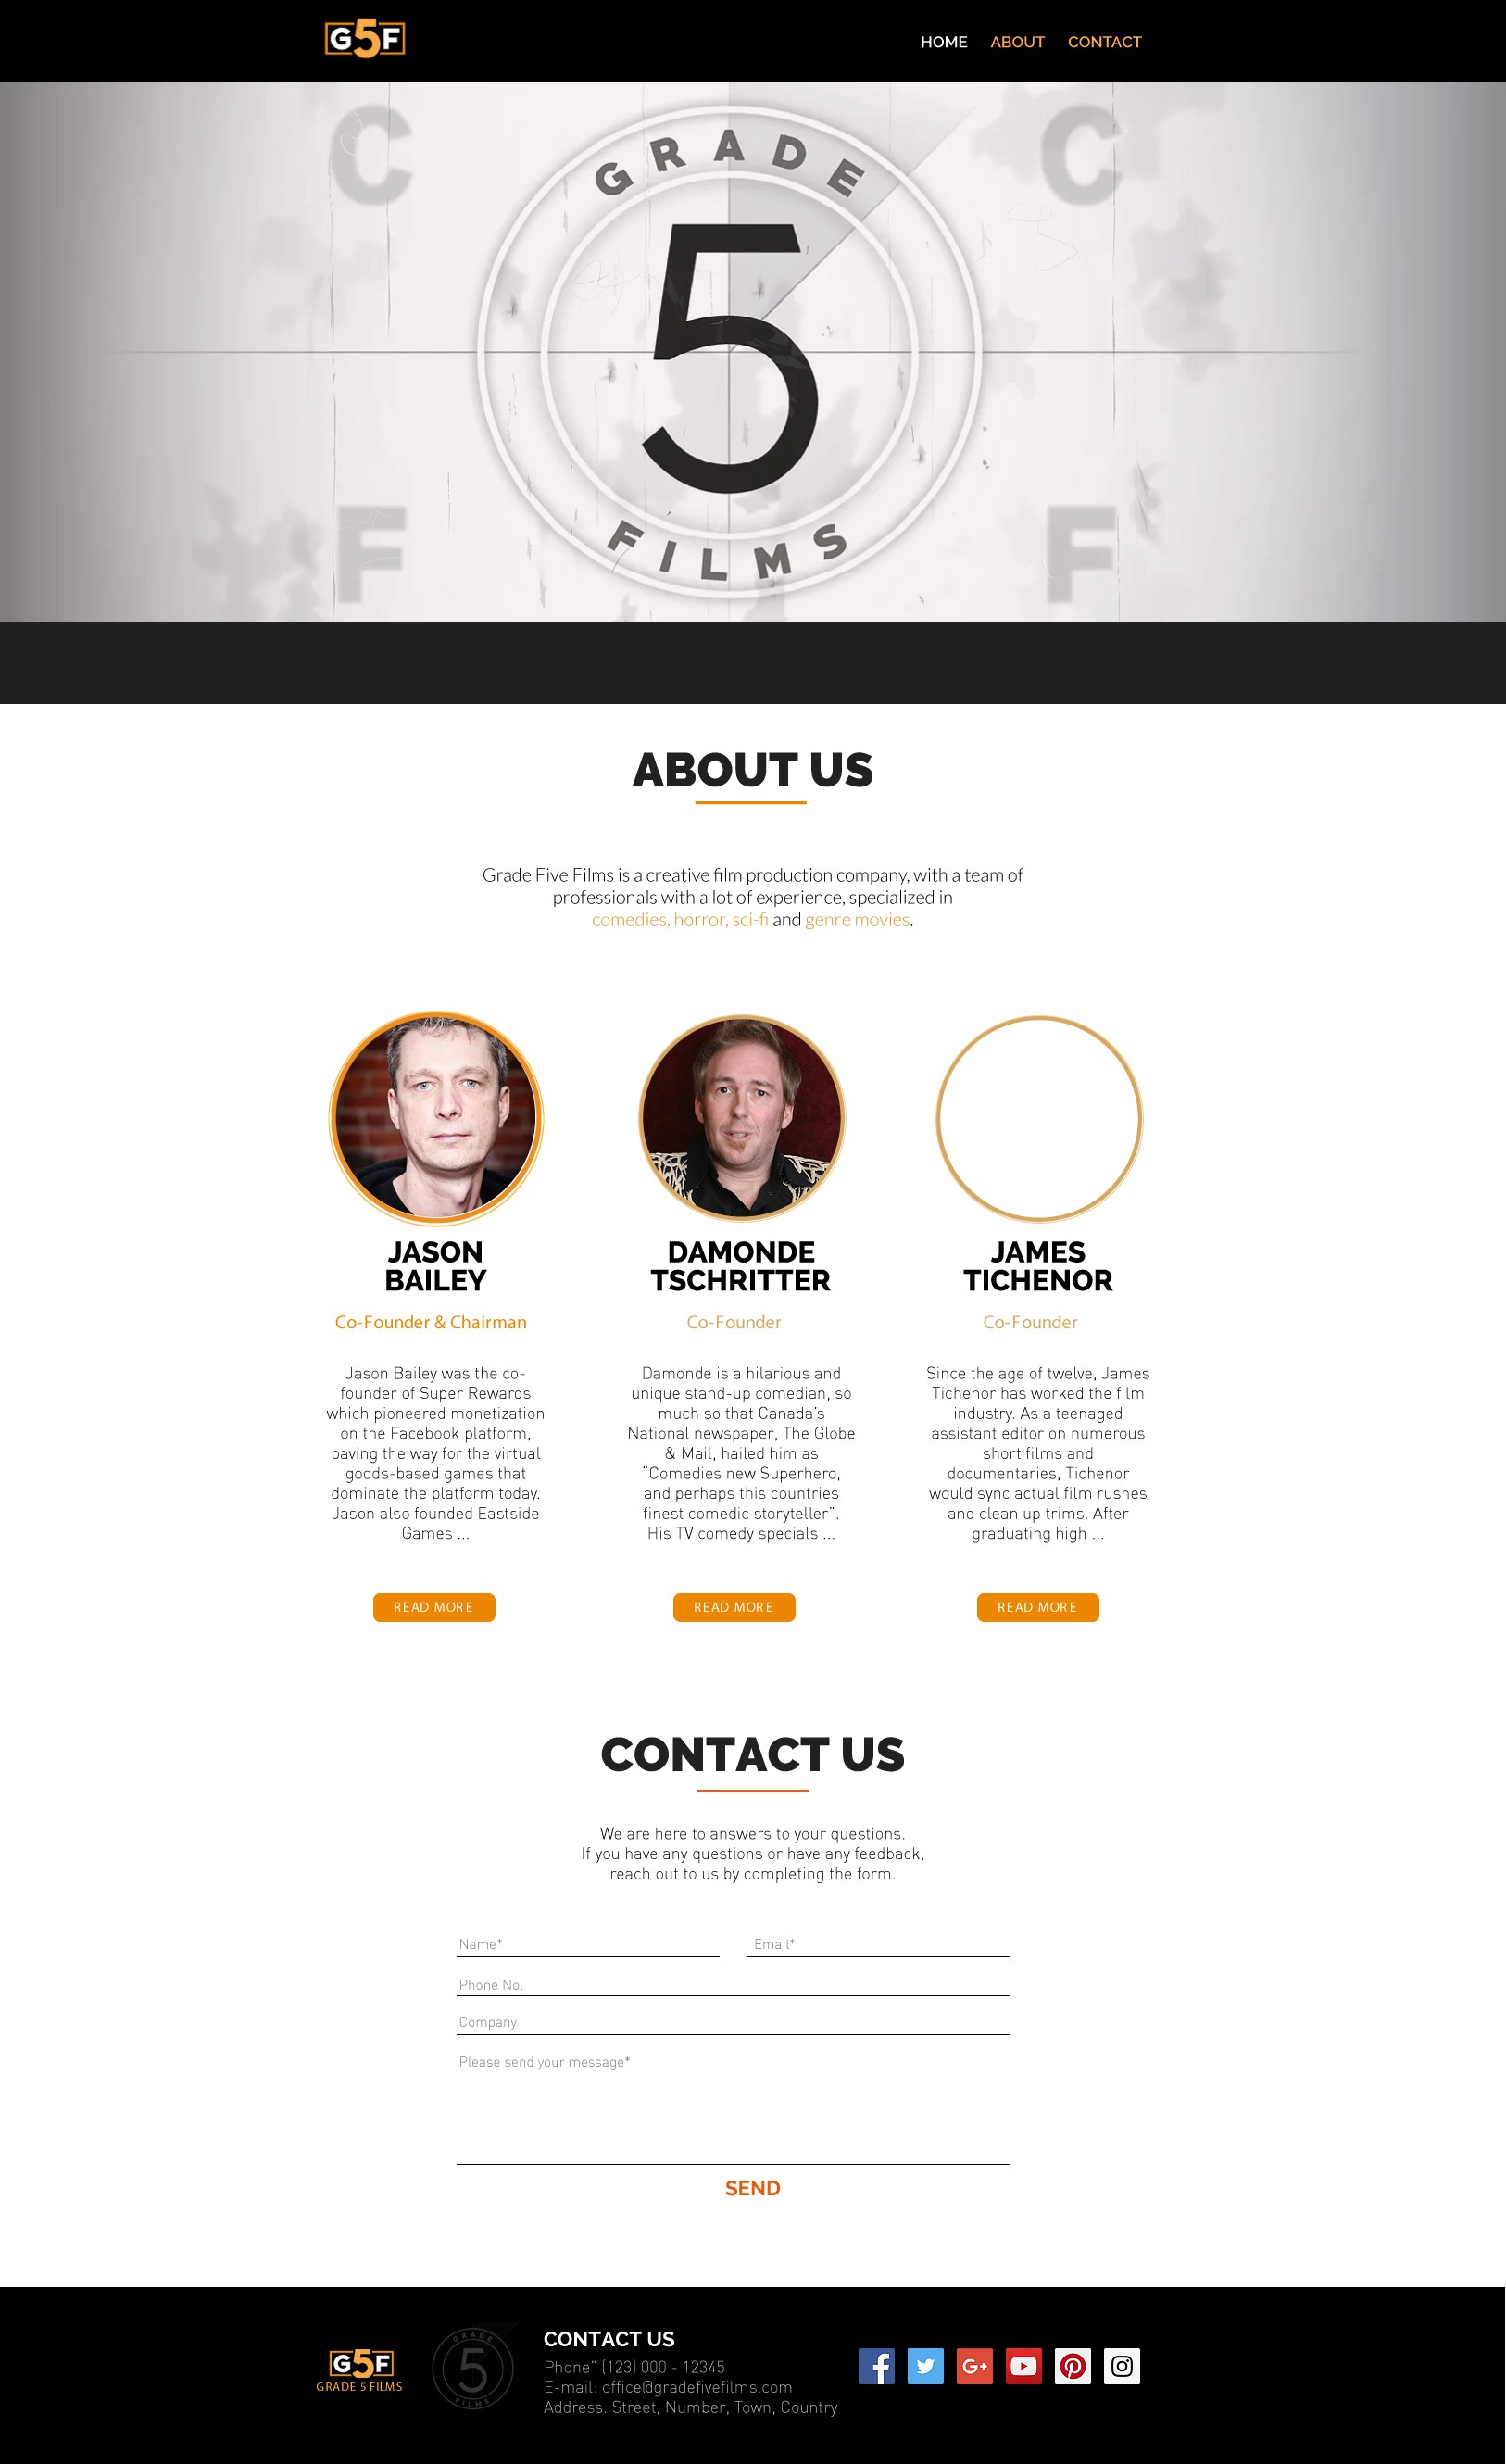 Design our website based on previous branding